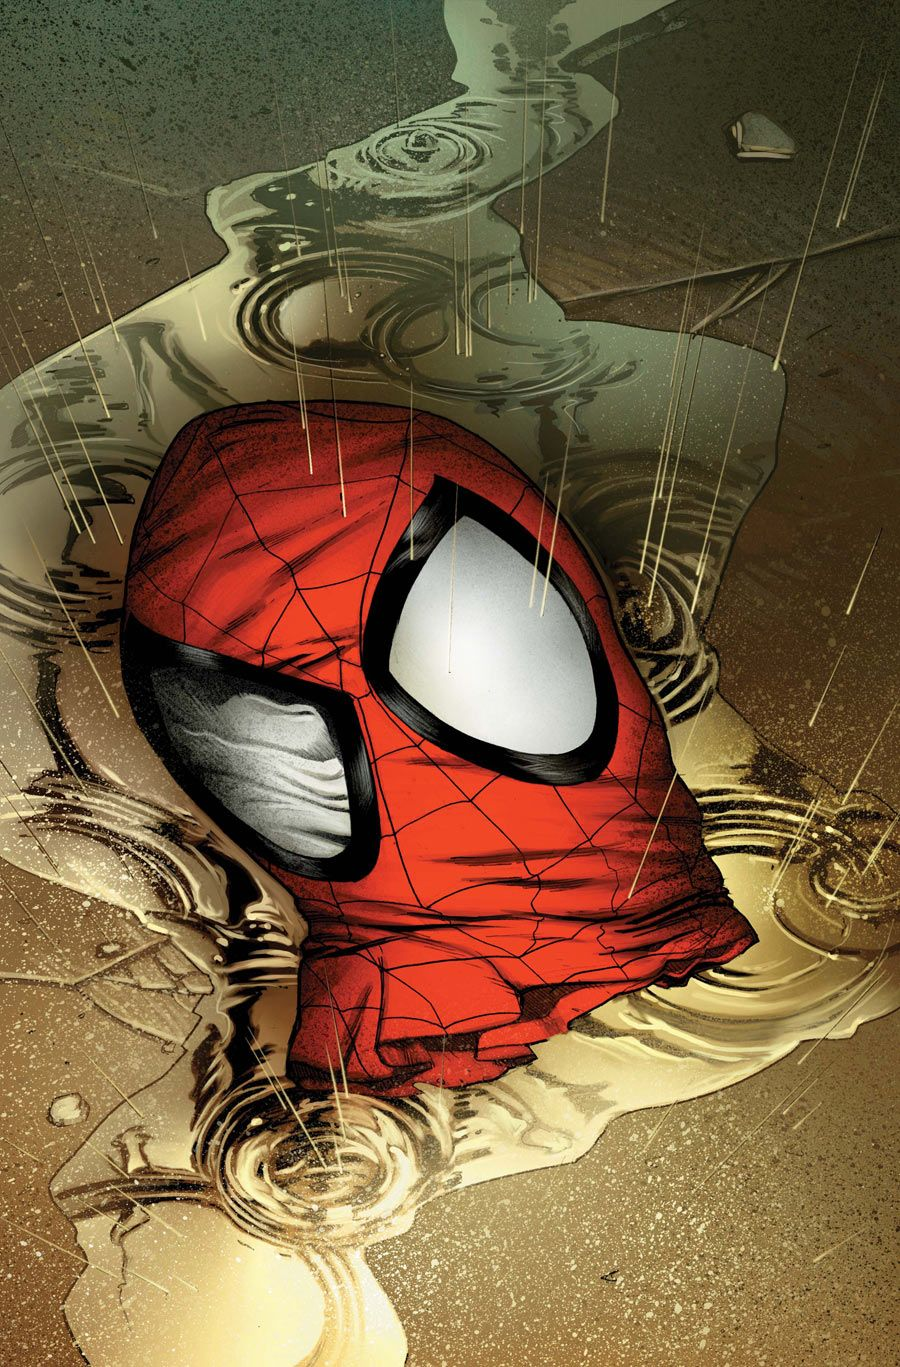 Ultimate Spiderman Fan Art Ultimate Spider Man Vol 1 133 Cover By Stuart Immonen Richard Isanove The Ultimate Spiderman Spiderman Midtown Comics